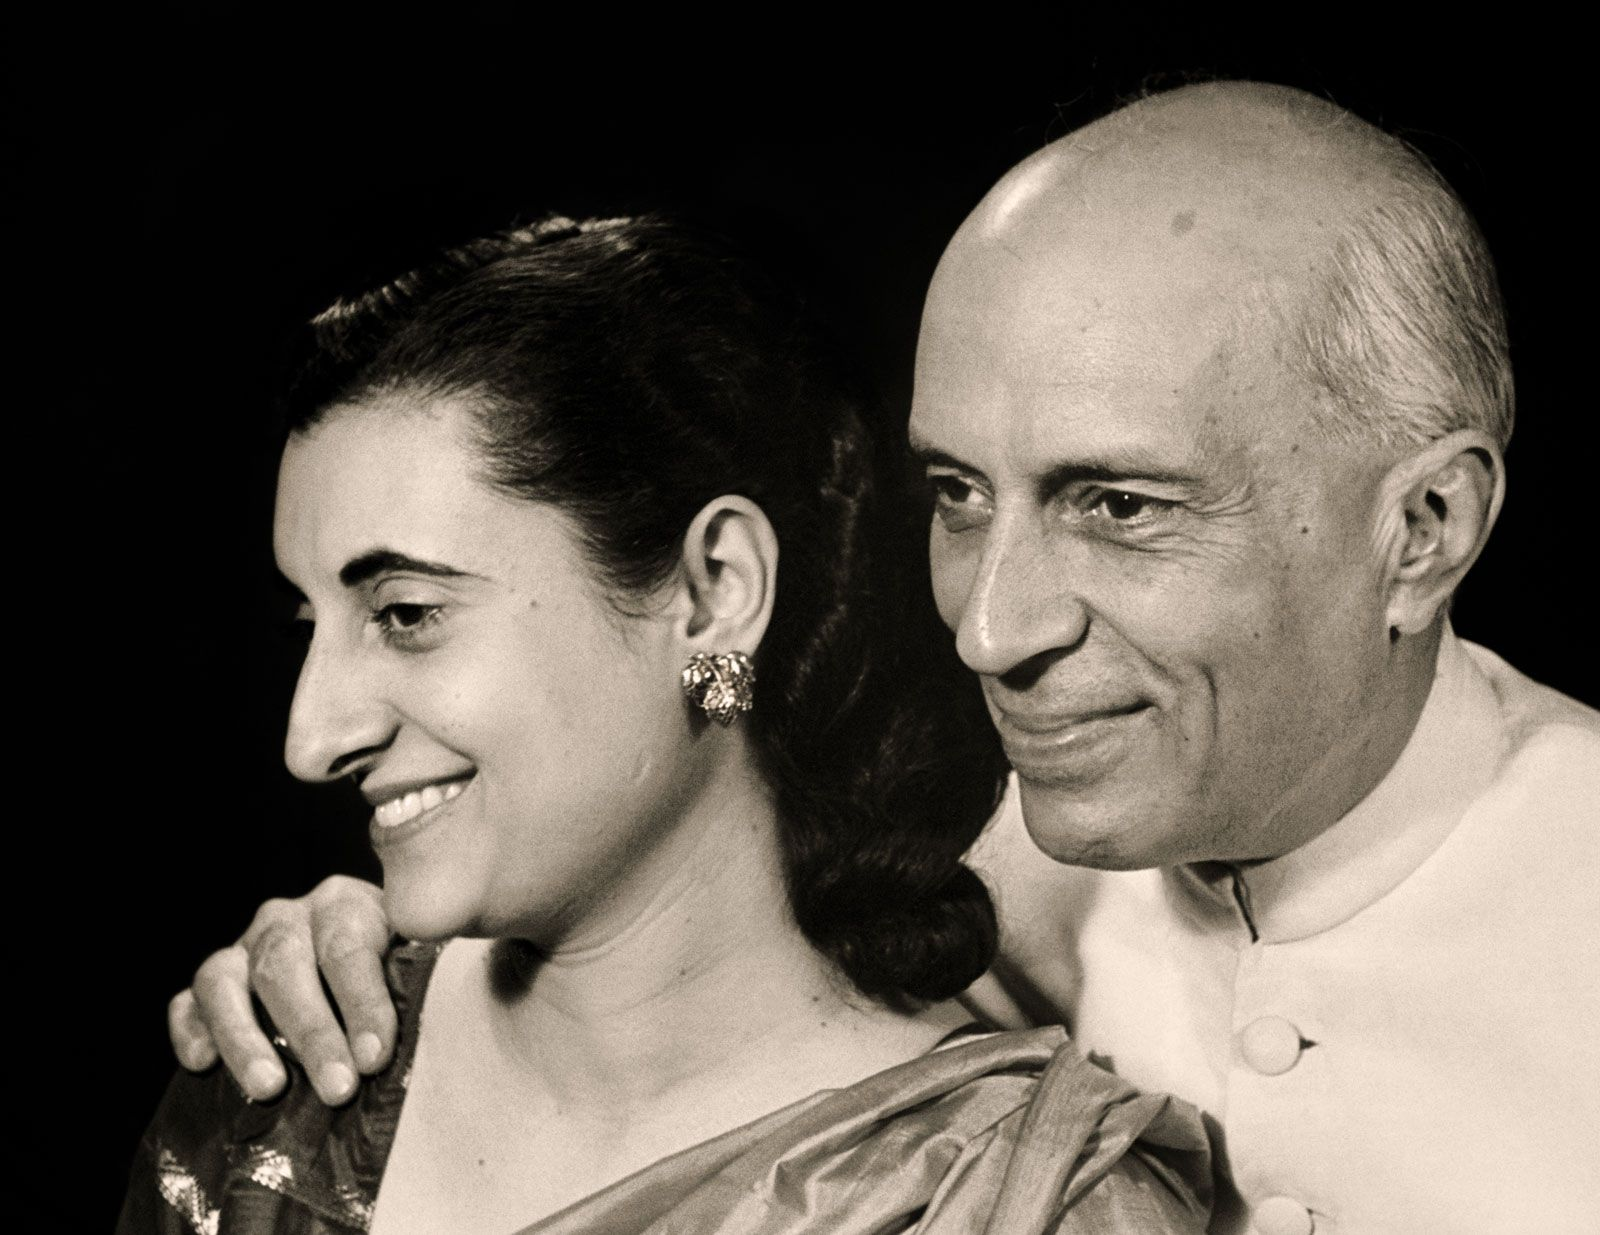 Photograph of jawaharlal nehru and indira gandhi by marcel photograph of jawaharlal nehru and indira gandhi by marcel sternberger new york 1949 nvjuhfo Image collections